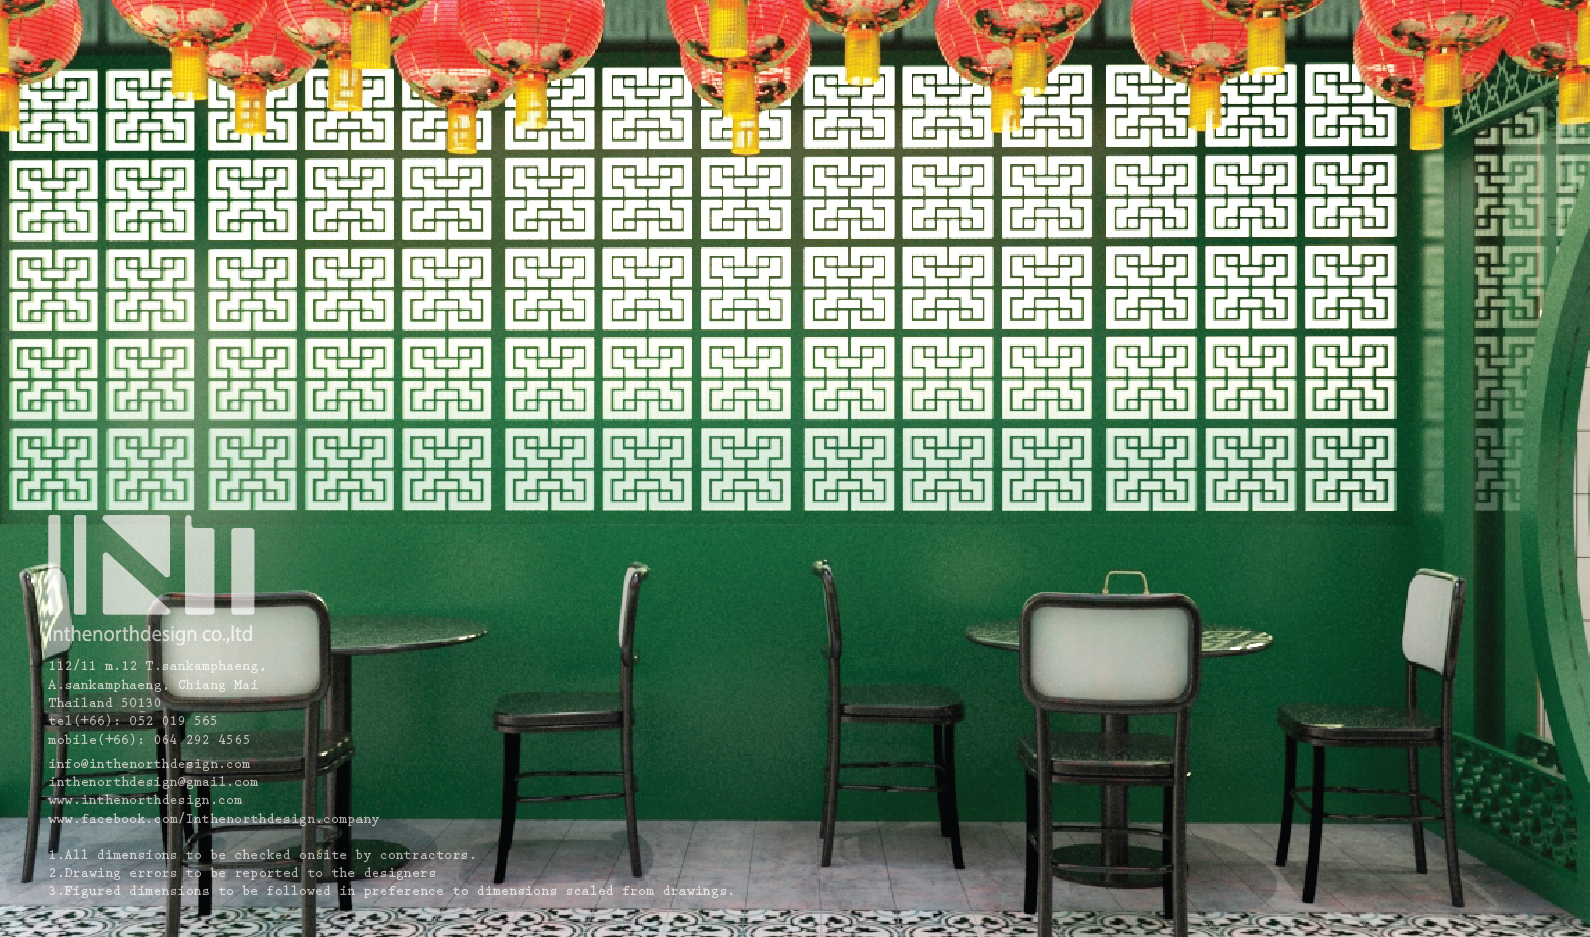 Inthenorth design Chinese Restaurant des